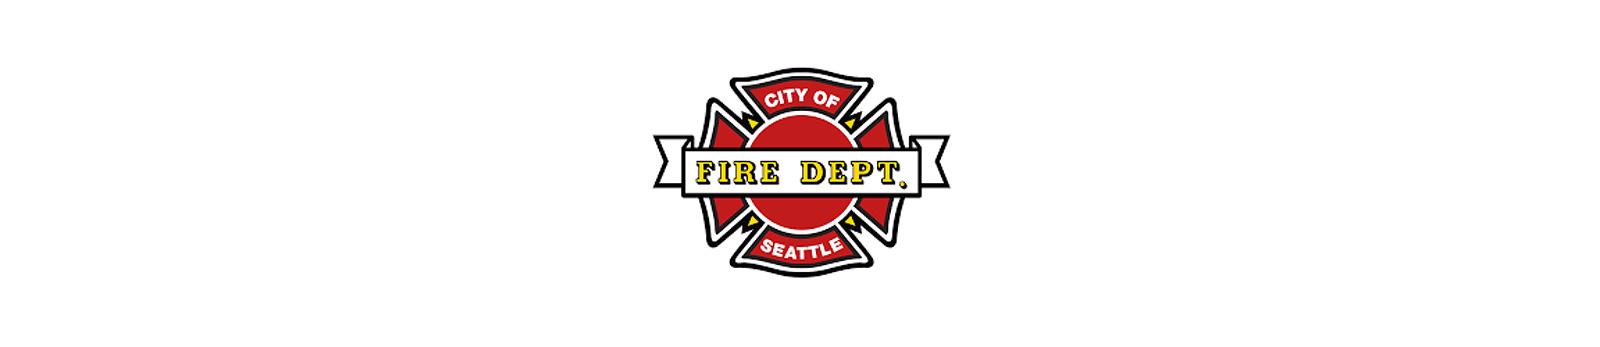 Seattle Fire Department - 2 of 5